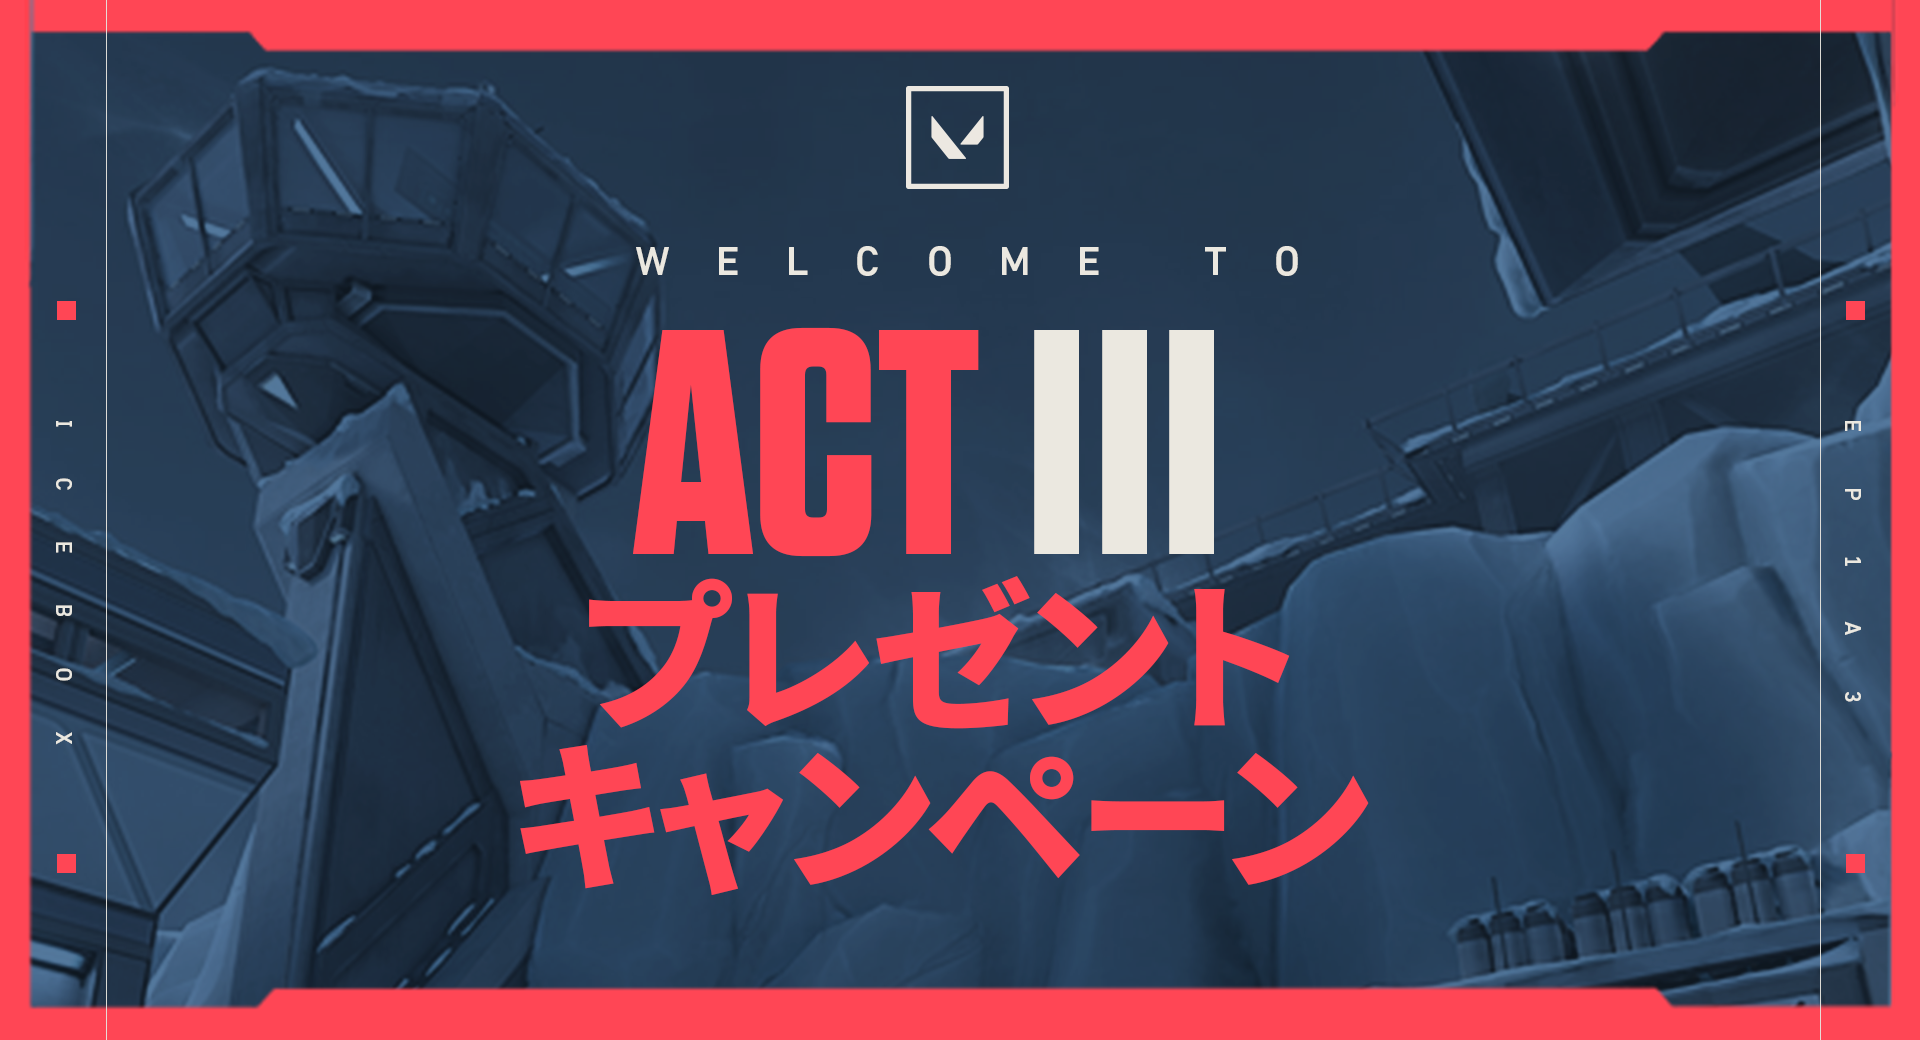 act_campaign_3_kv.png